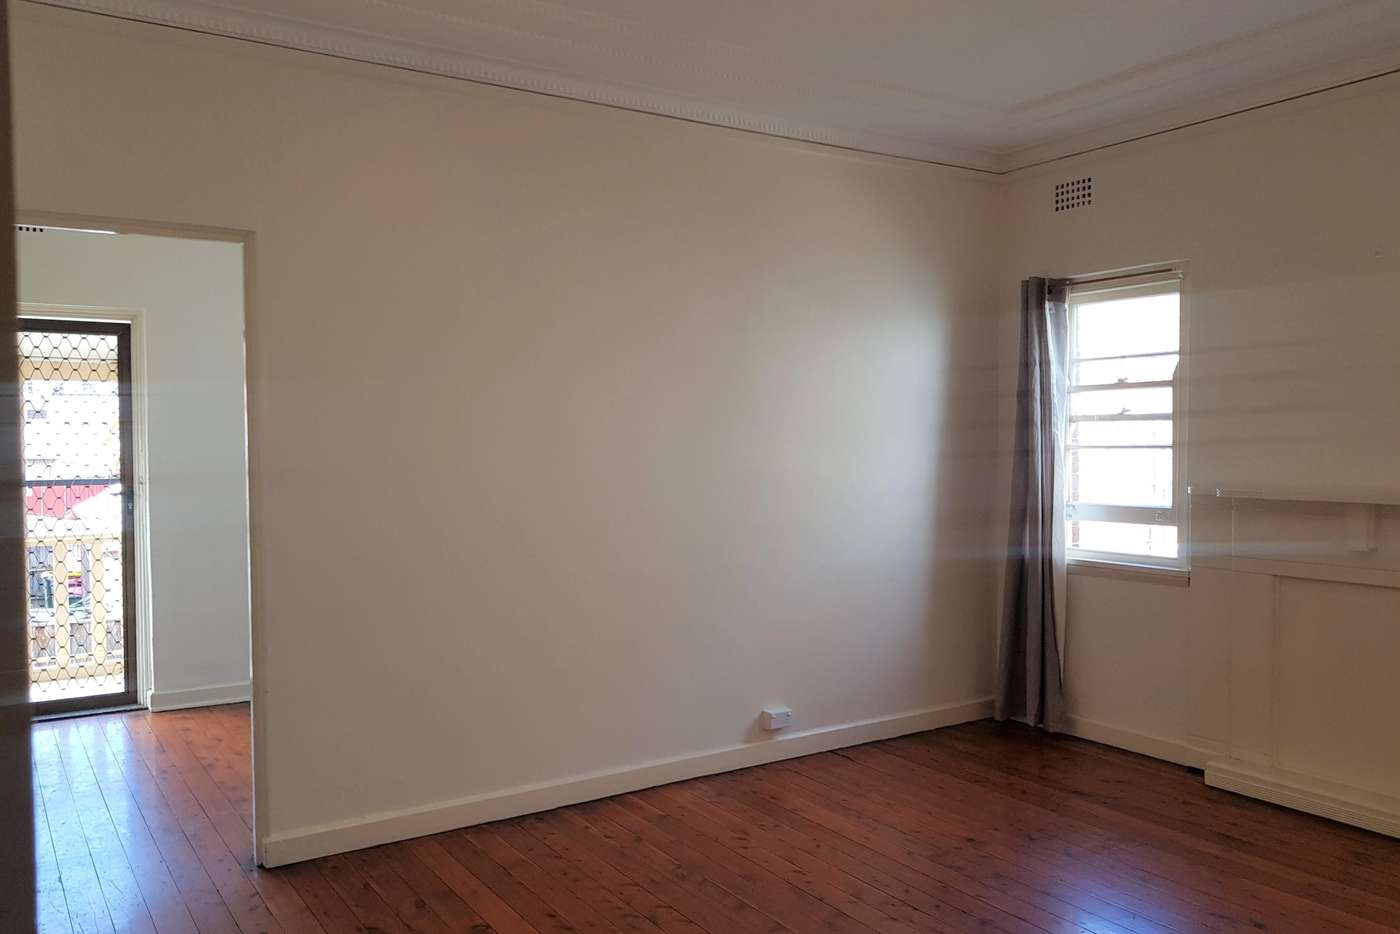 Main view of Homely apartment listing, 4/1 Cavill Avenue, Ashfield NSW 2131